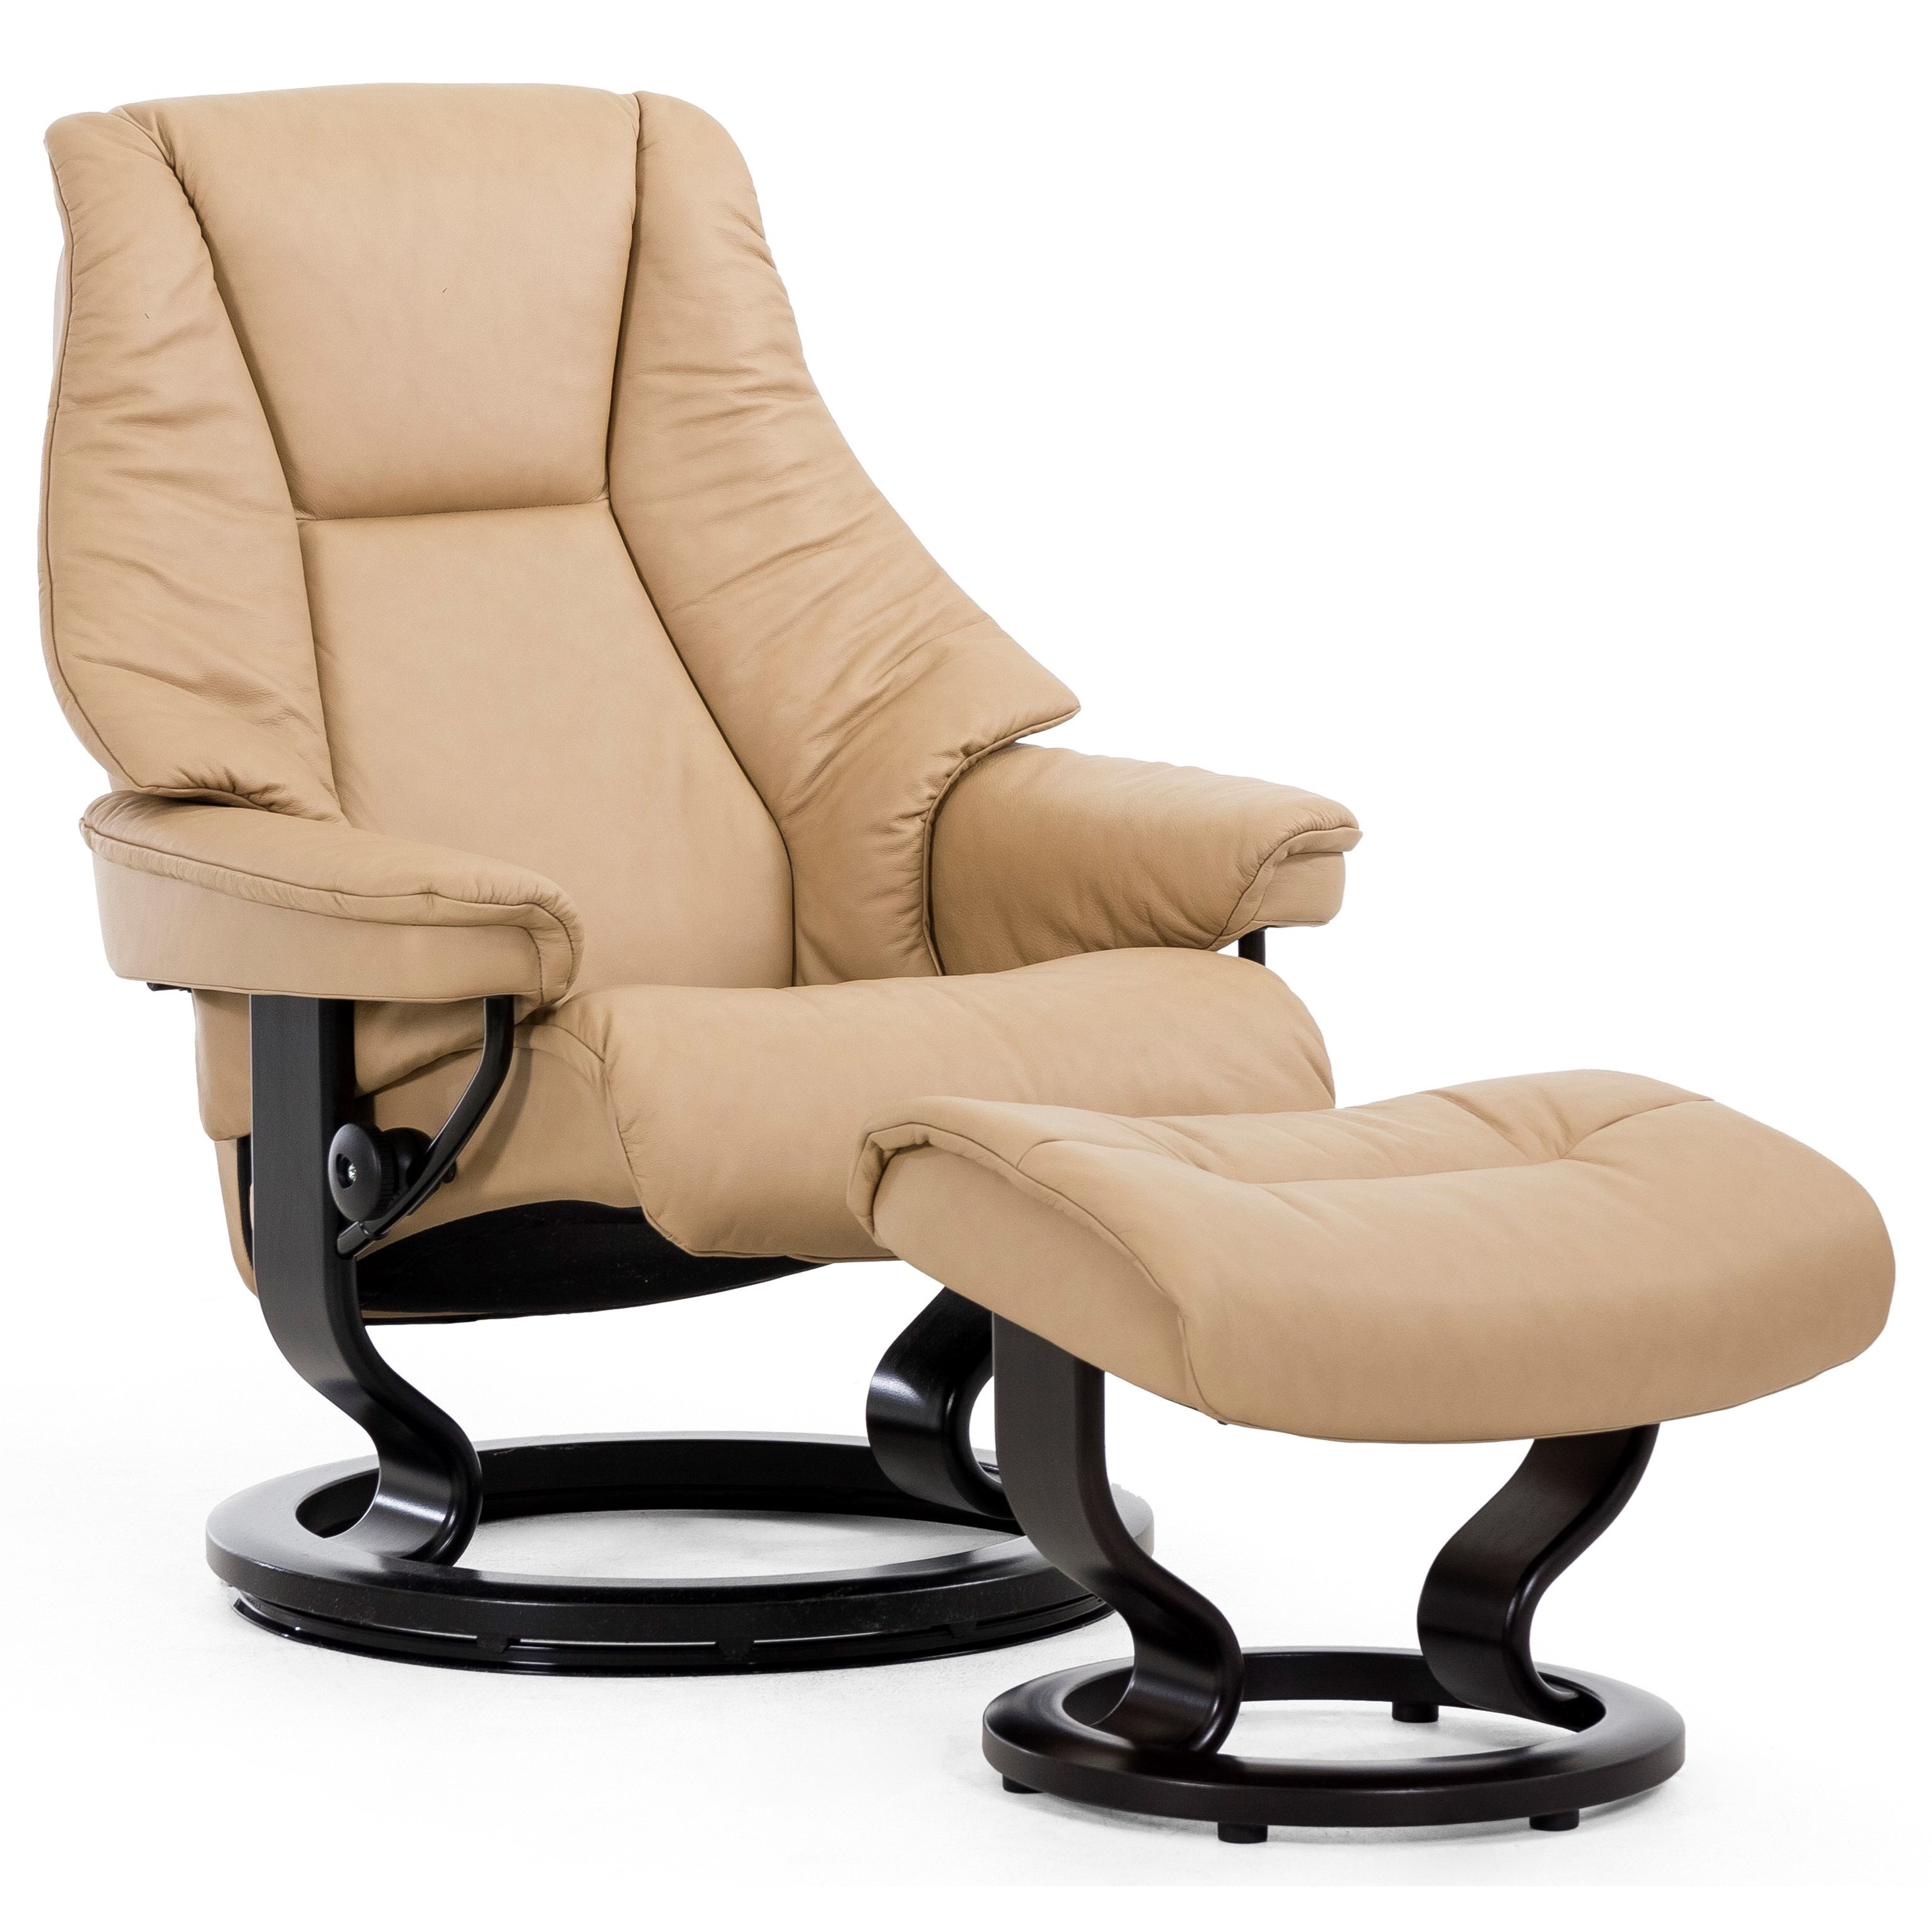 Live Small Chair & Ottoman with Classic Base by Stressless at Bennett's Furniture and Mattresses